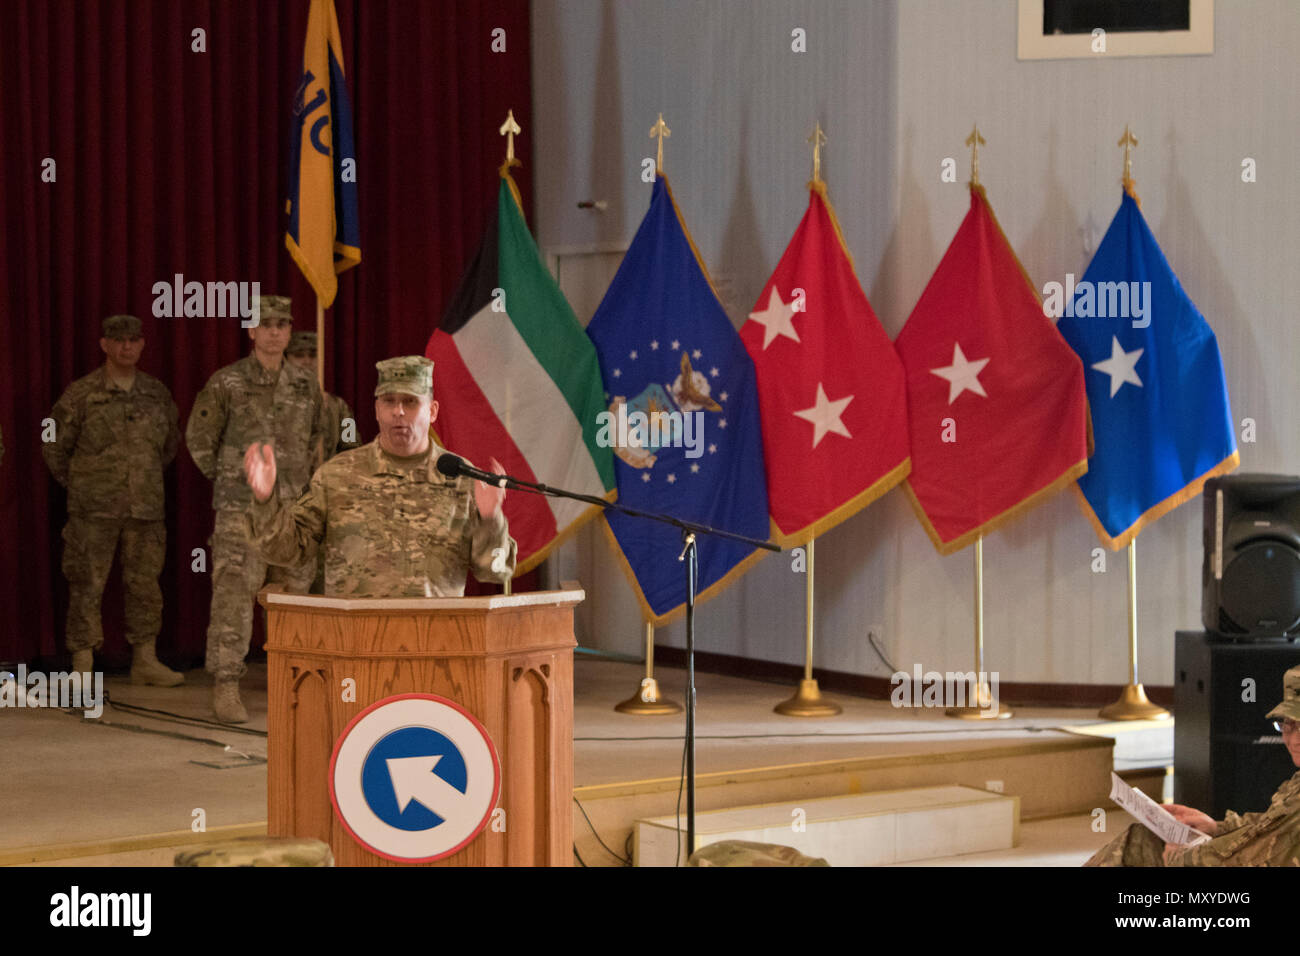 1st Sustainment Command (Theater) Commander Maj. Gen. Paul C. Hurley Jr., U.S. Army Central deputy commanding general, gives remarks during the 451st Sustainment Command (Expeditionary) and 316th ESC transfer of authority ceremony at Camp Arifjan, Kuwait, Dec. 23, 2016. (U.S. Army Photo by Staff Sgt. Dalton Smith) - Stock Image